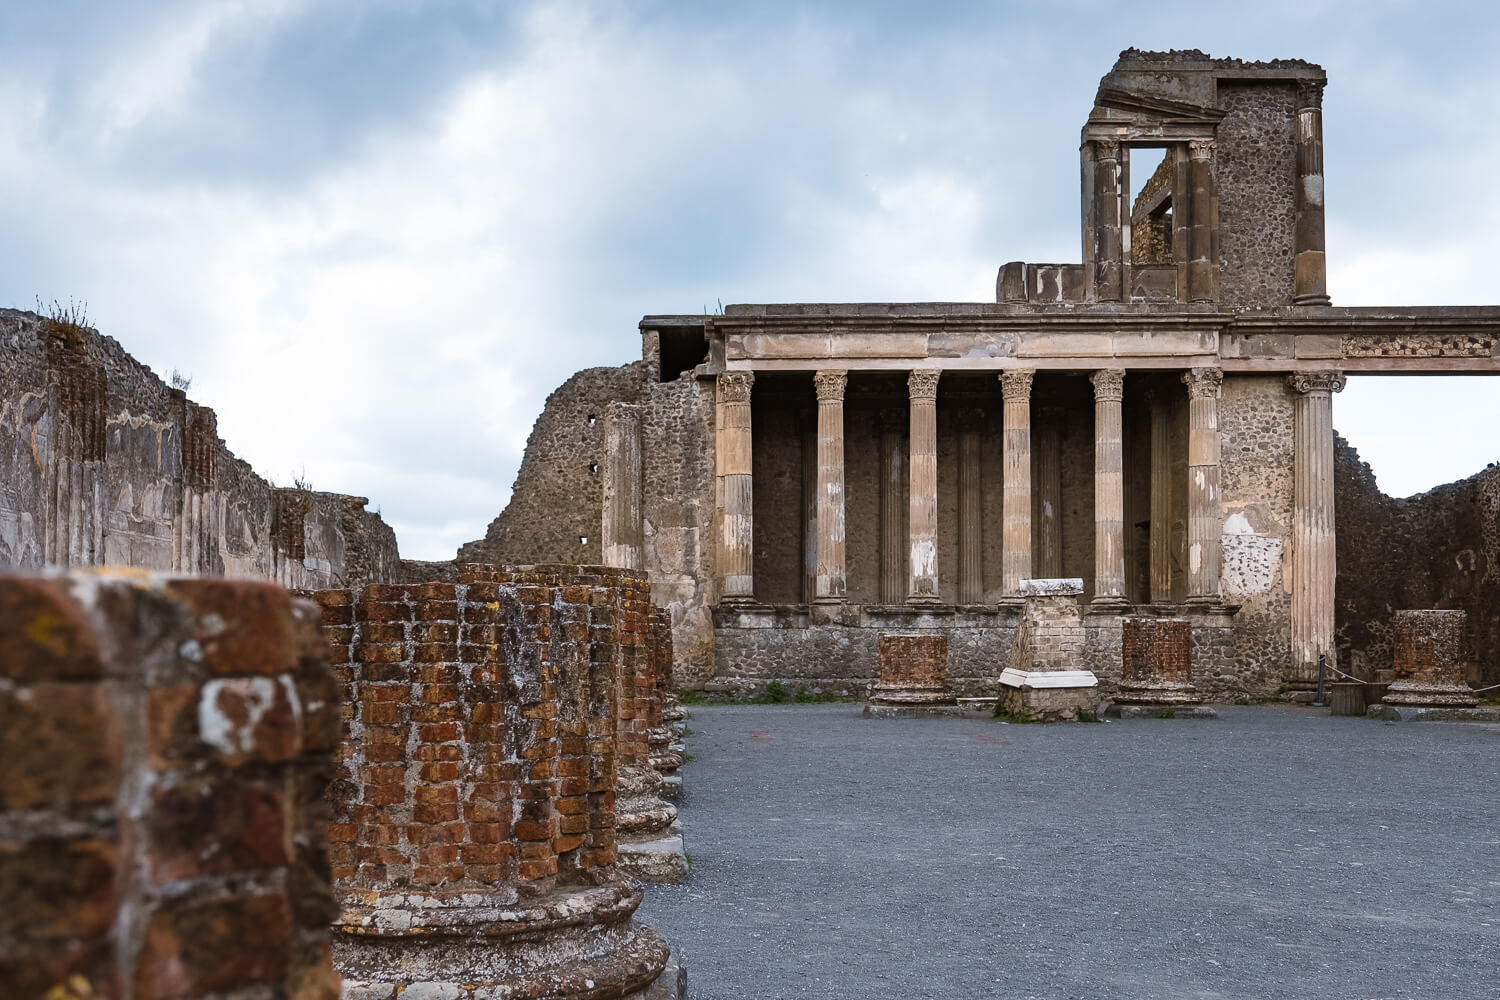 """The Basilica in the forum of Pompeii, Italy. Travel photography and guide by © Natasha Lequepeys for """"And Then I Met Yoko"""". #pompeii #italy #fujifilm #travelphotography"""